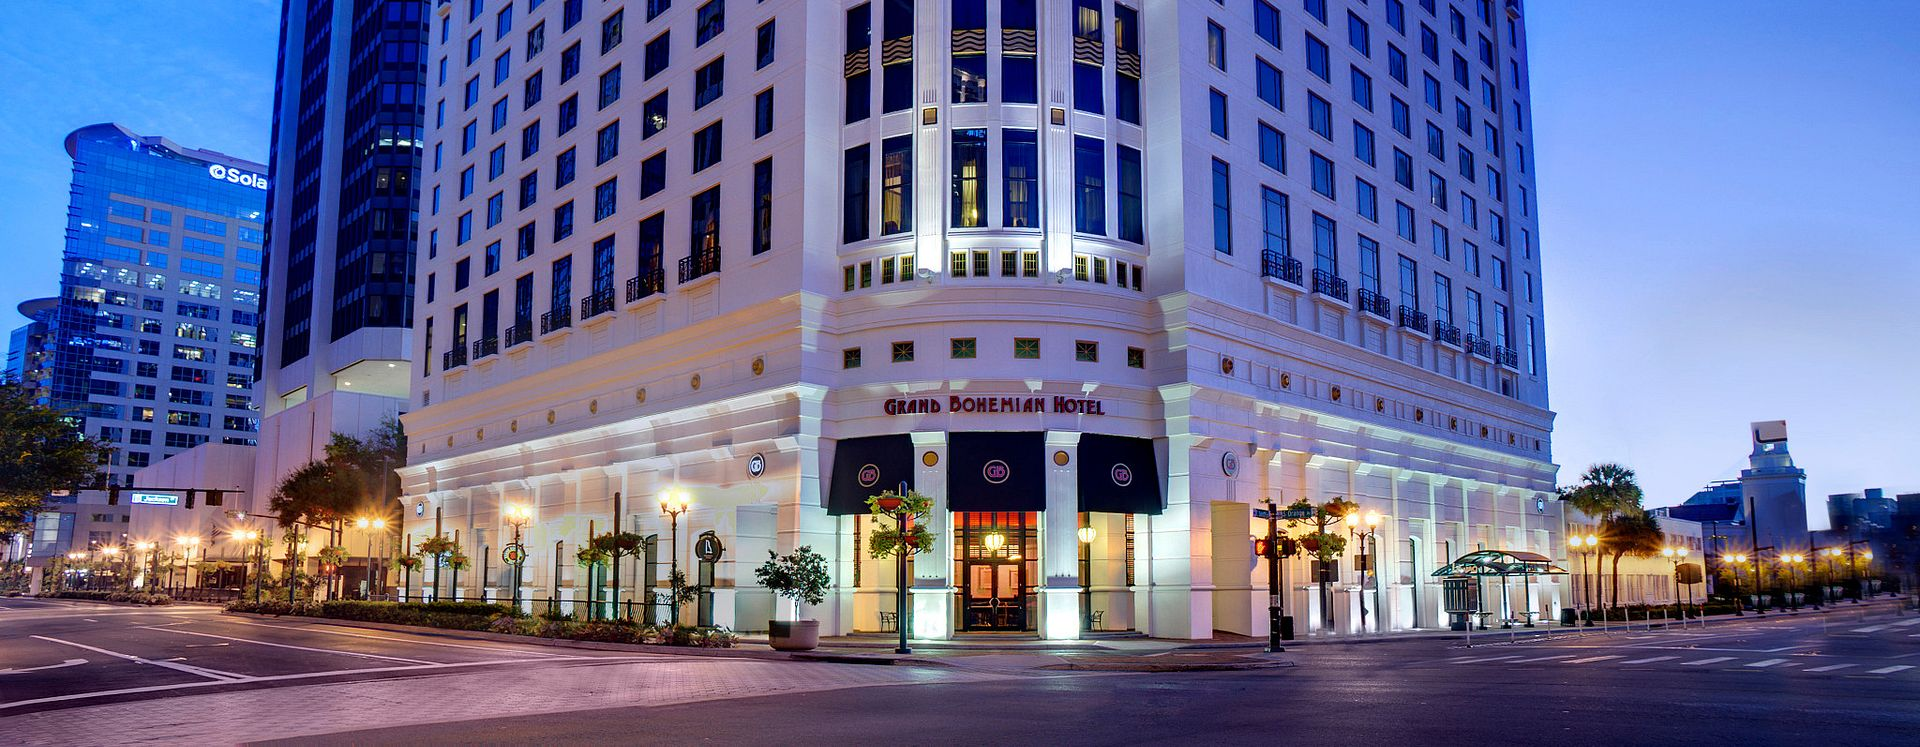 Grand Bohemian Hotel exterior at night